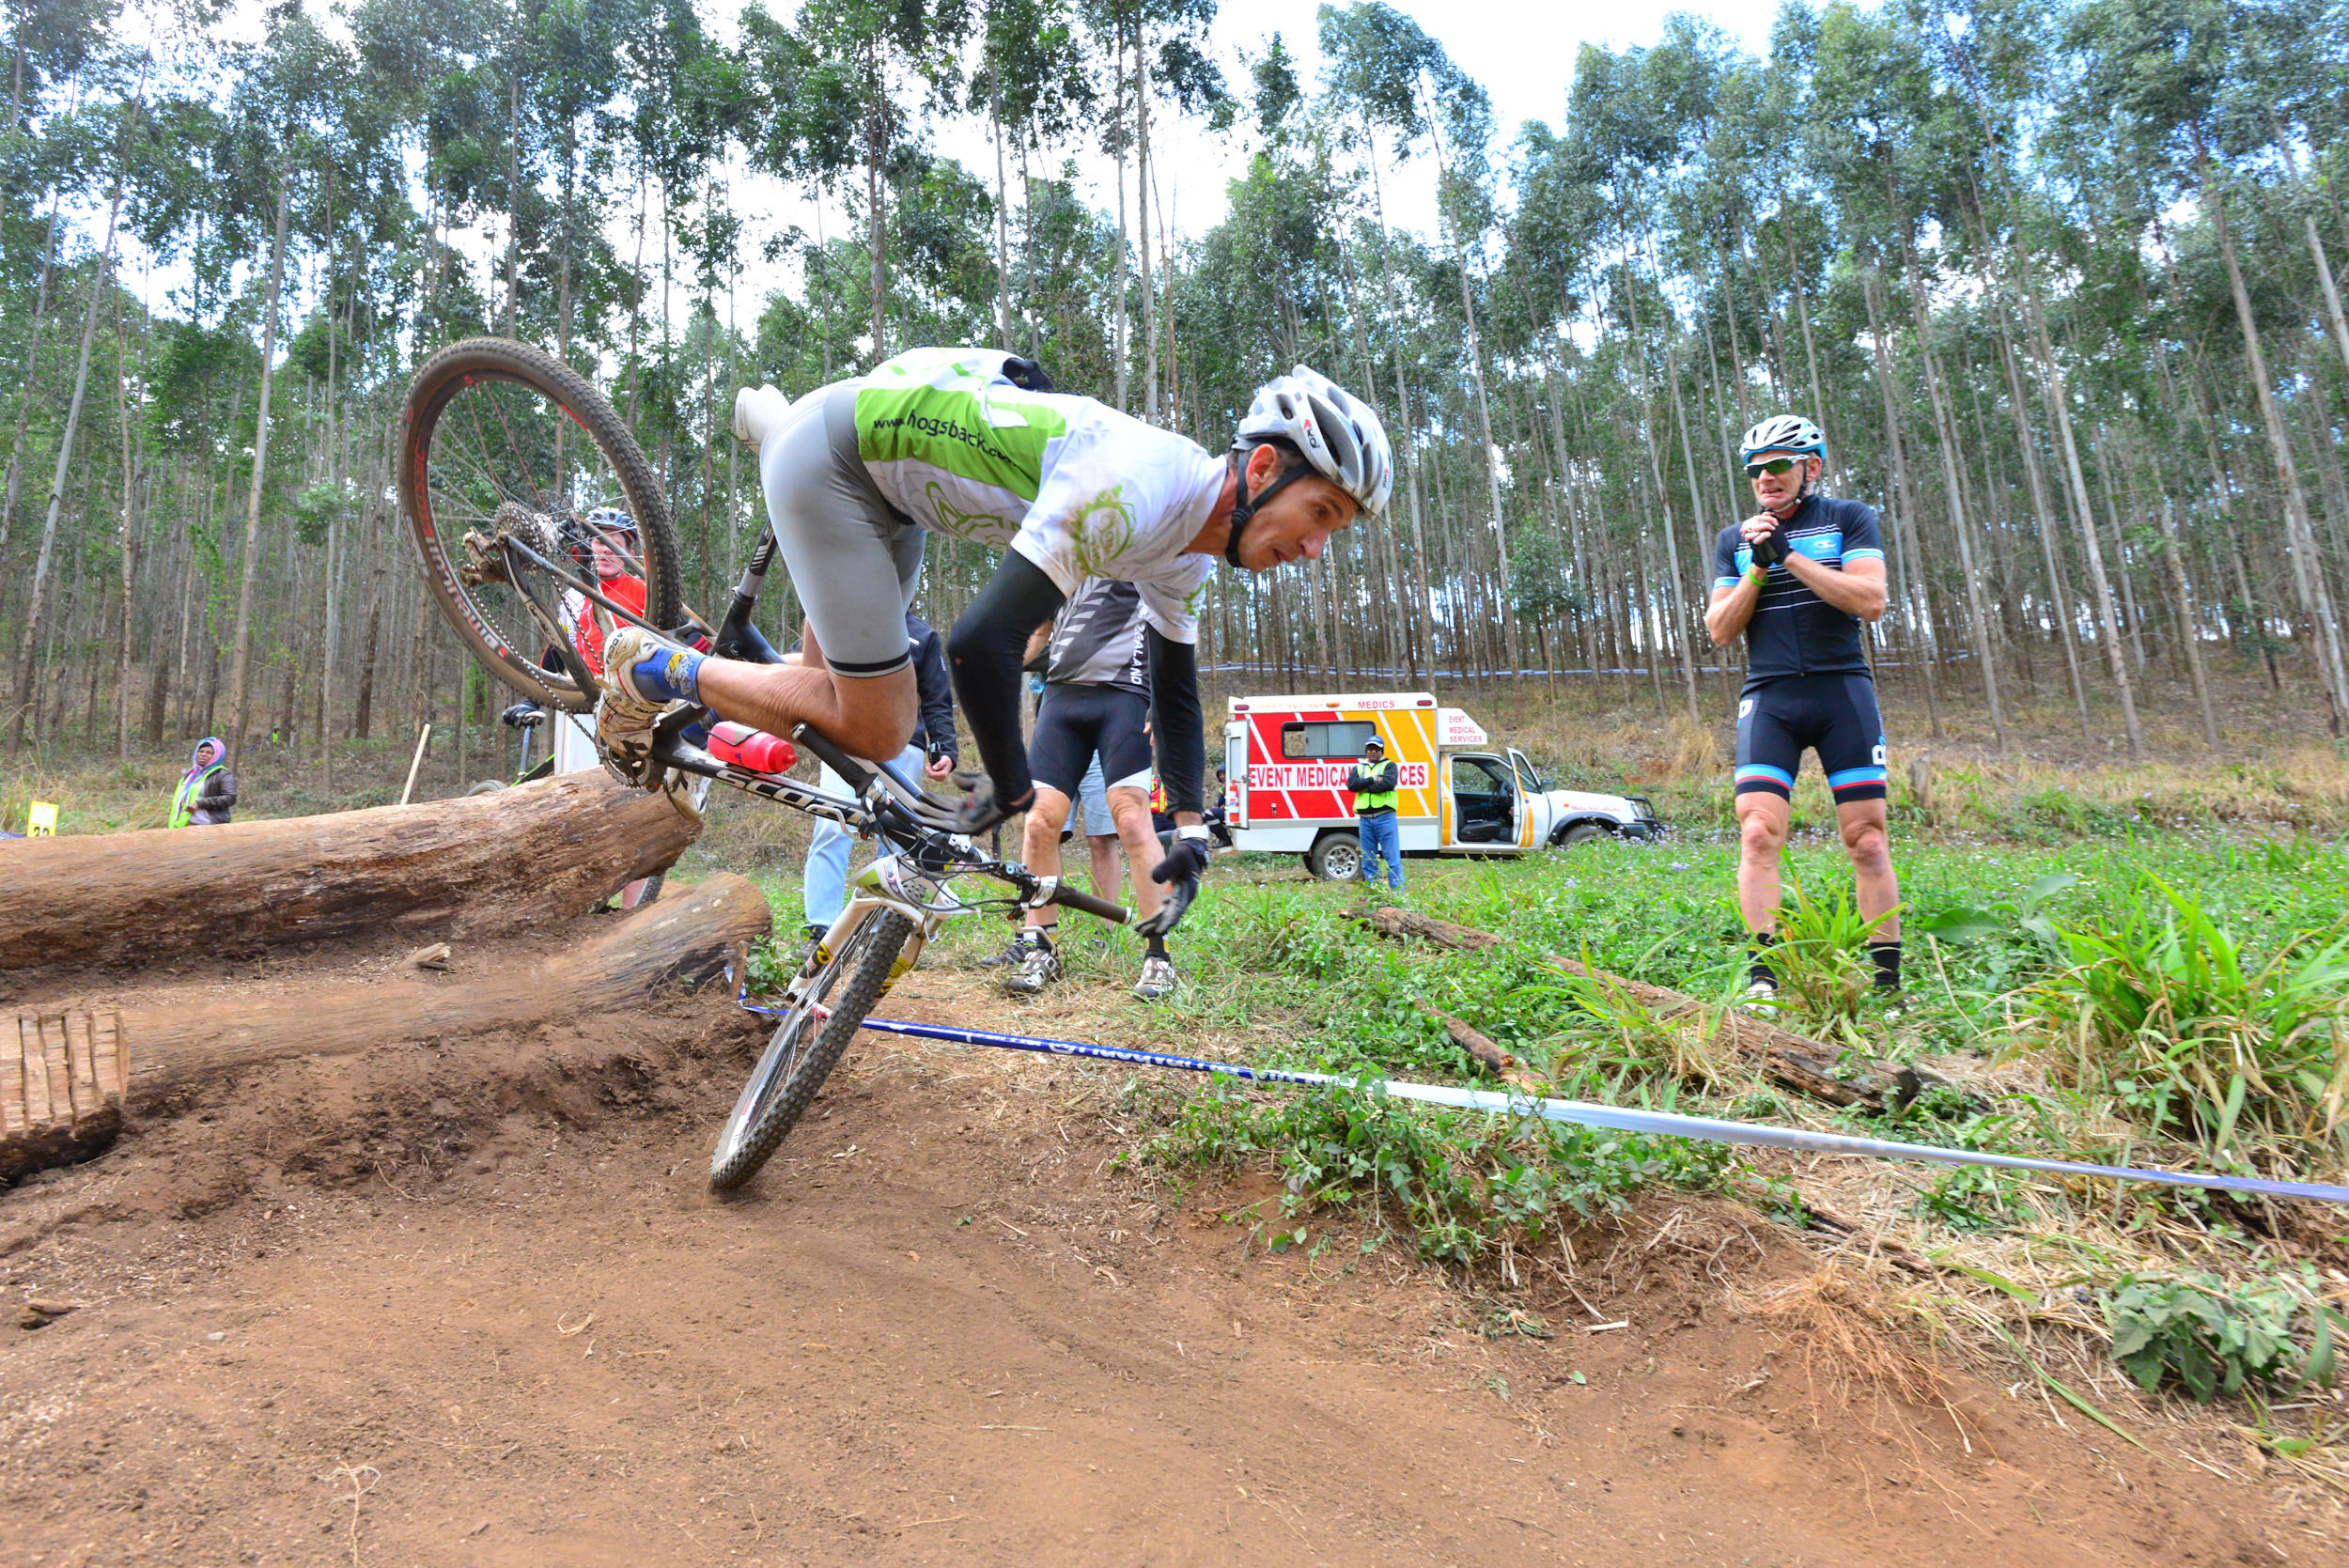 at Cascades MTB Park Downhill Trail in Pietermaritzburg, South Africa - photo by meagerdude